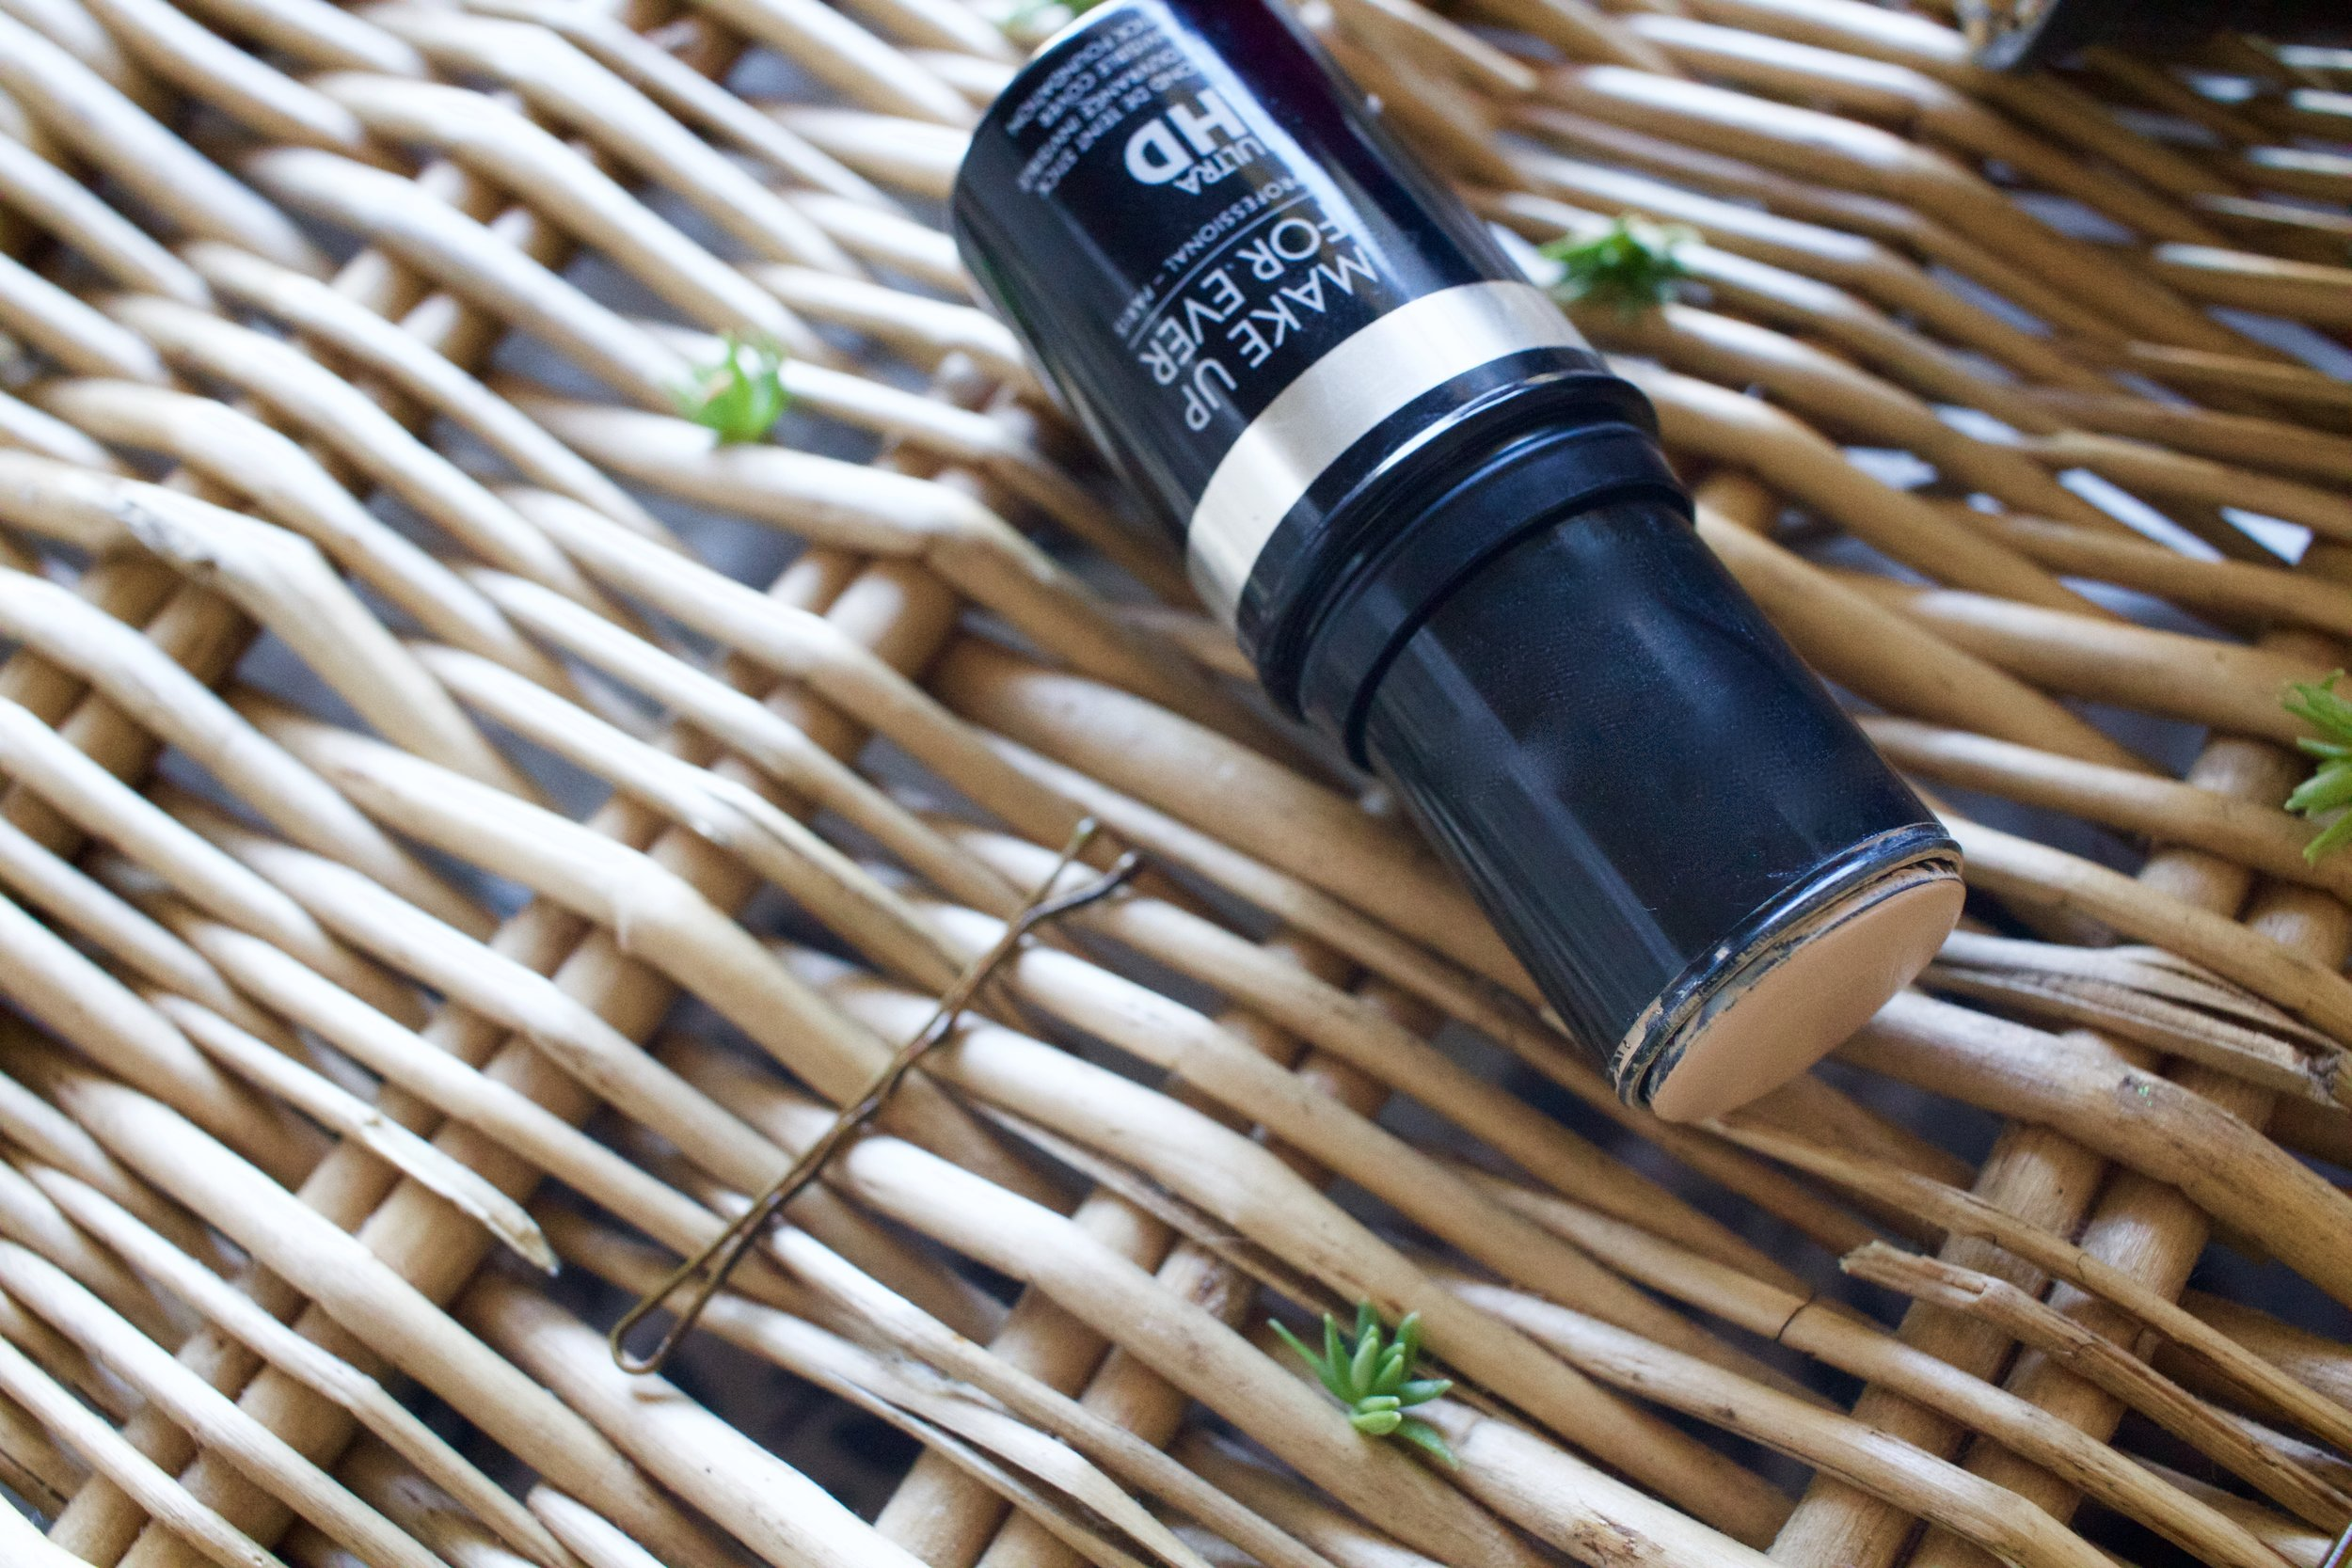 The Dry Skin Foundation Stick